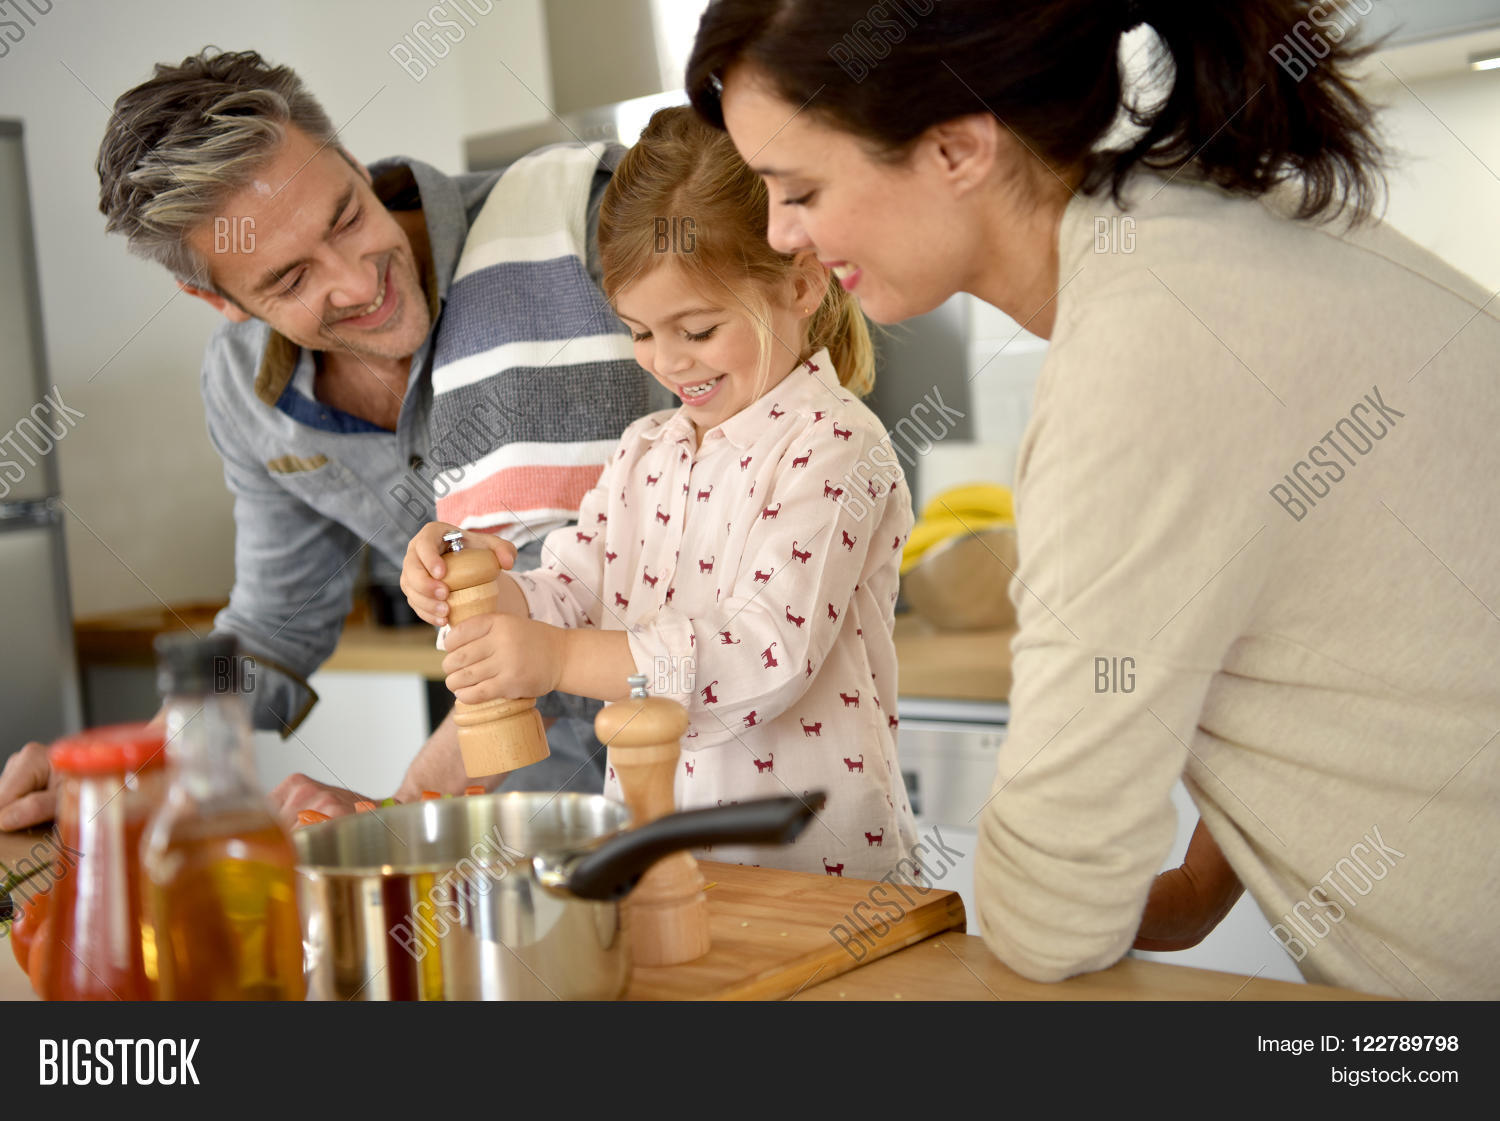 Parents Child Cooking Image & Photo (Free Trial) | Bigstock